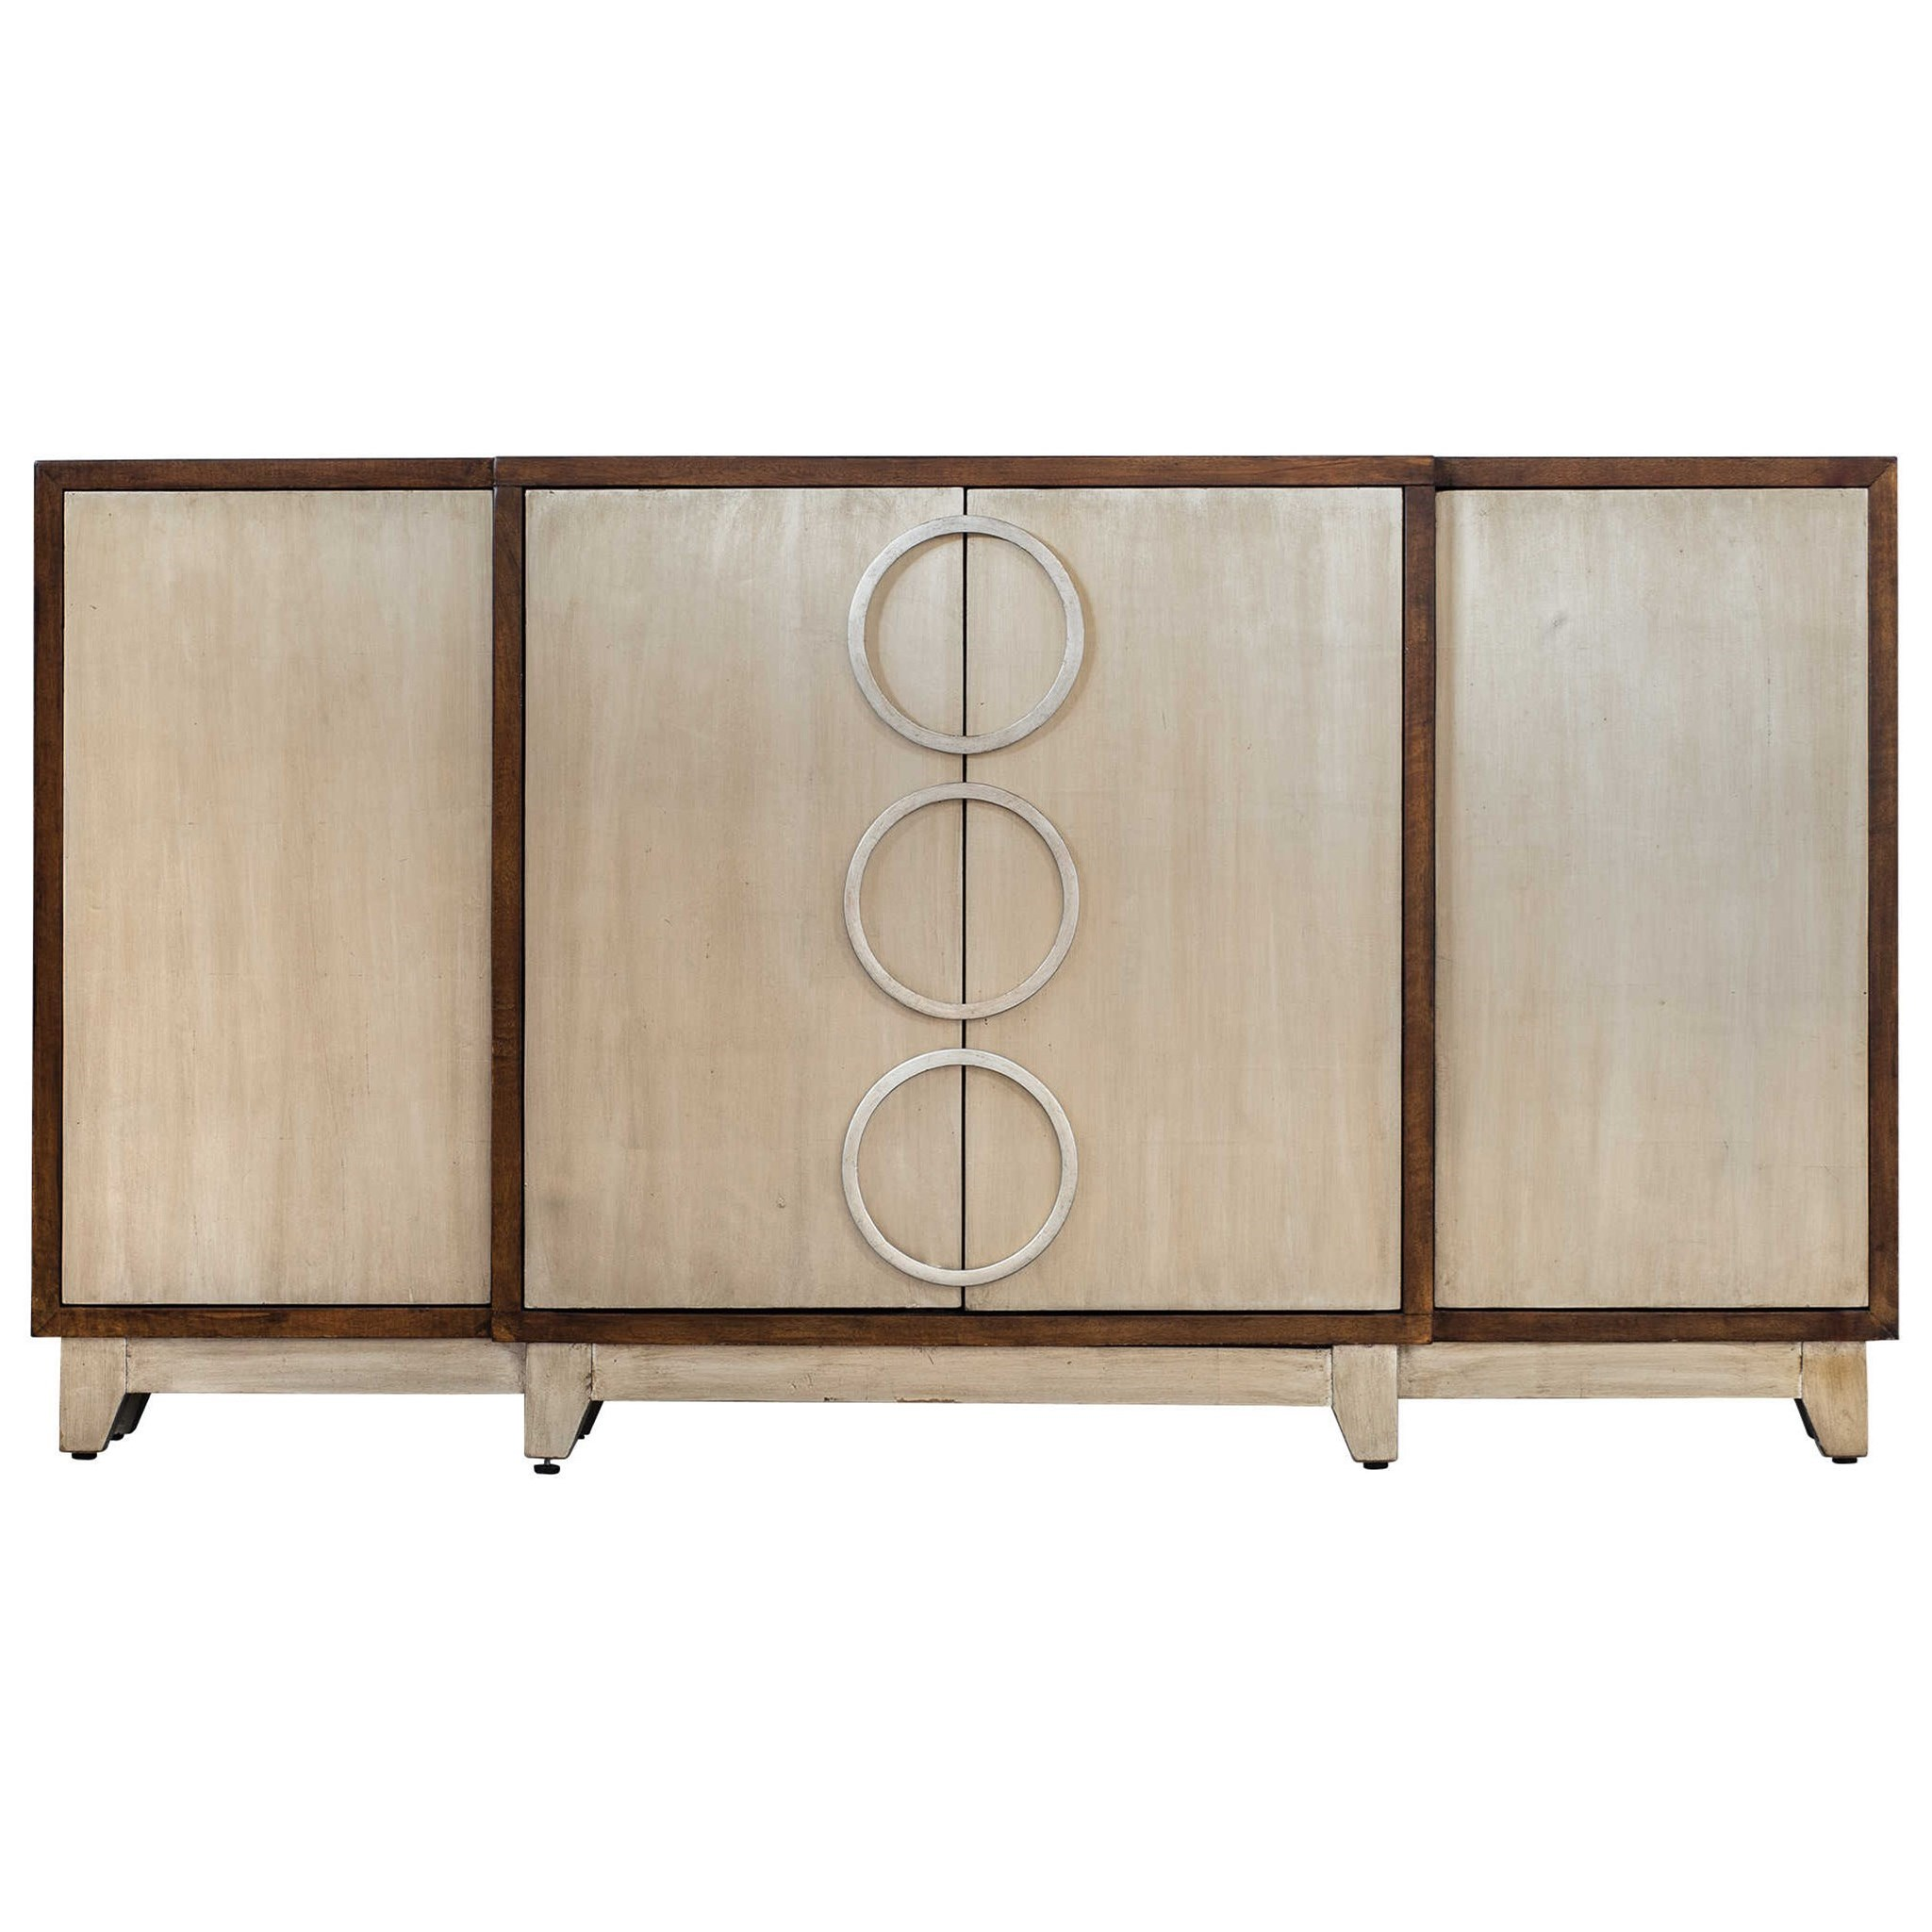 Accent Furniture - Chests Jacinta Modern Console Cabinet by Uttermost at Upper Room Home Furnishings